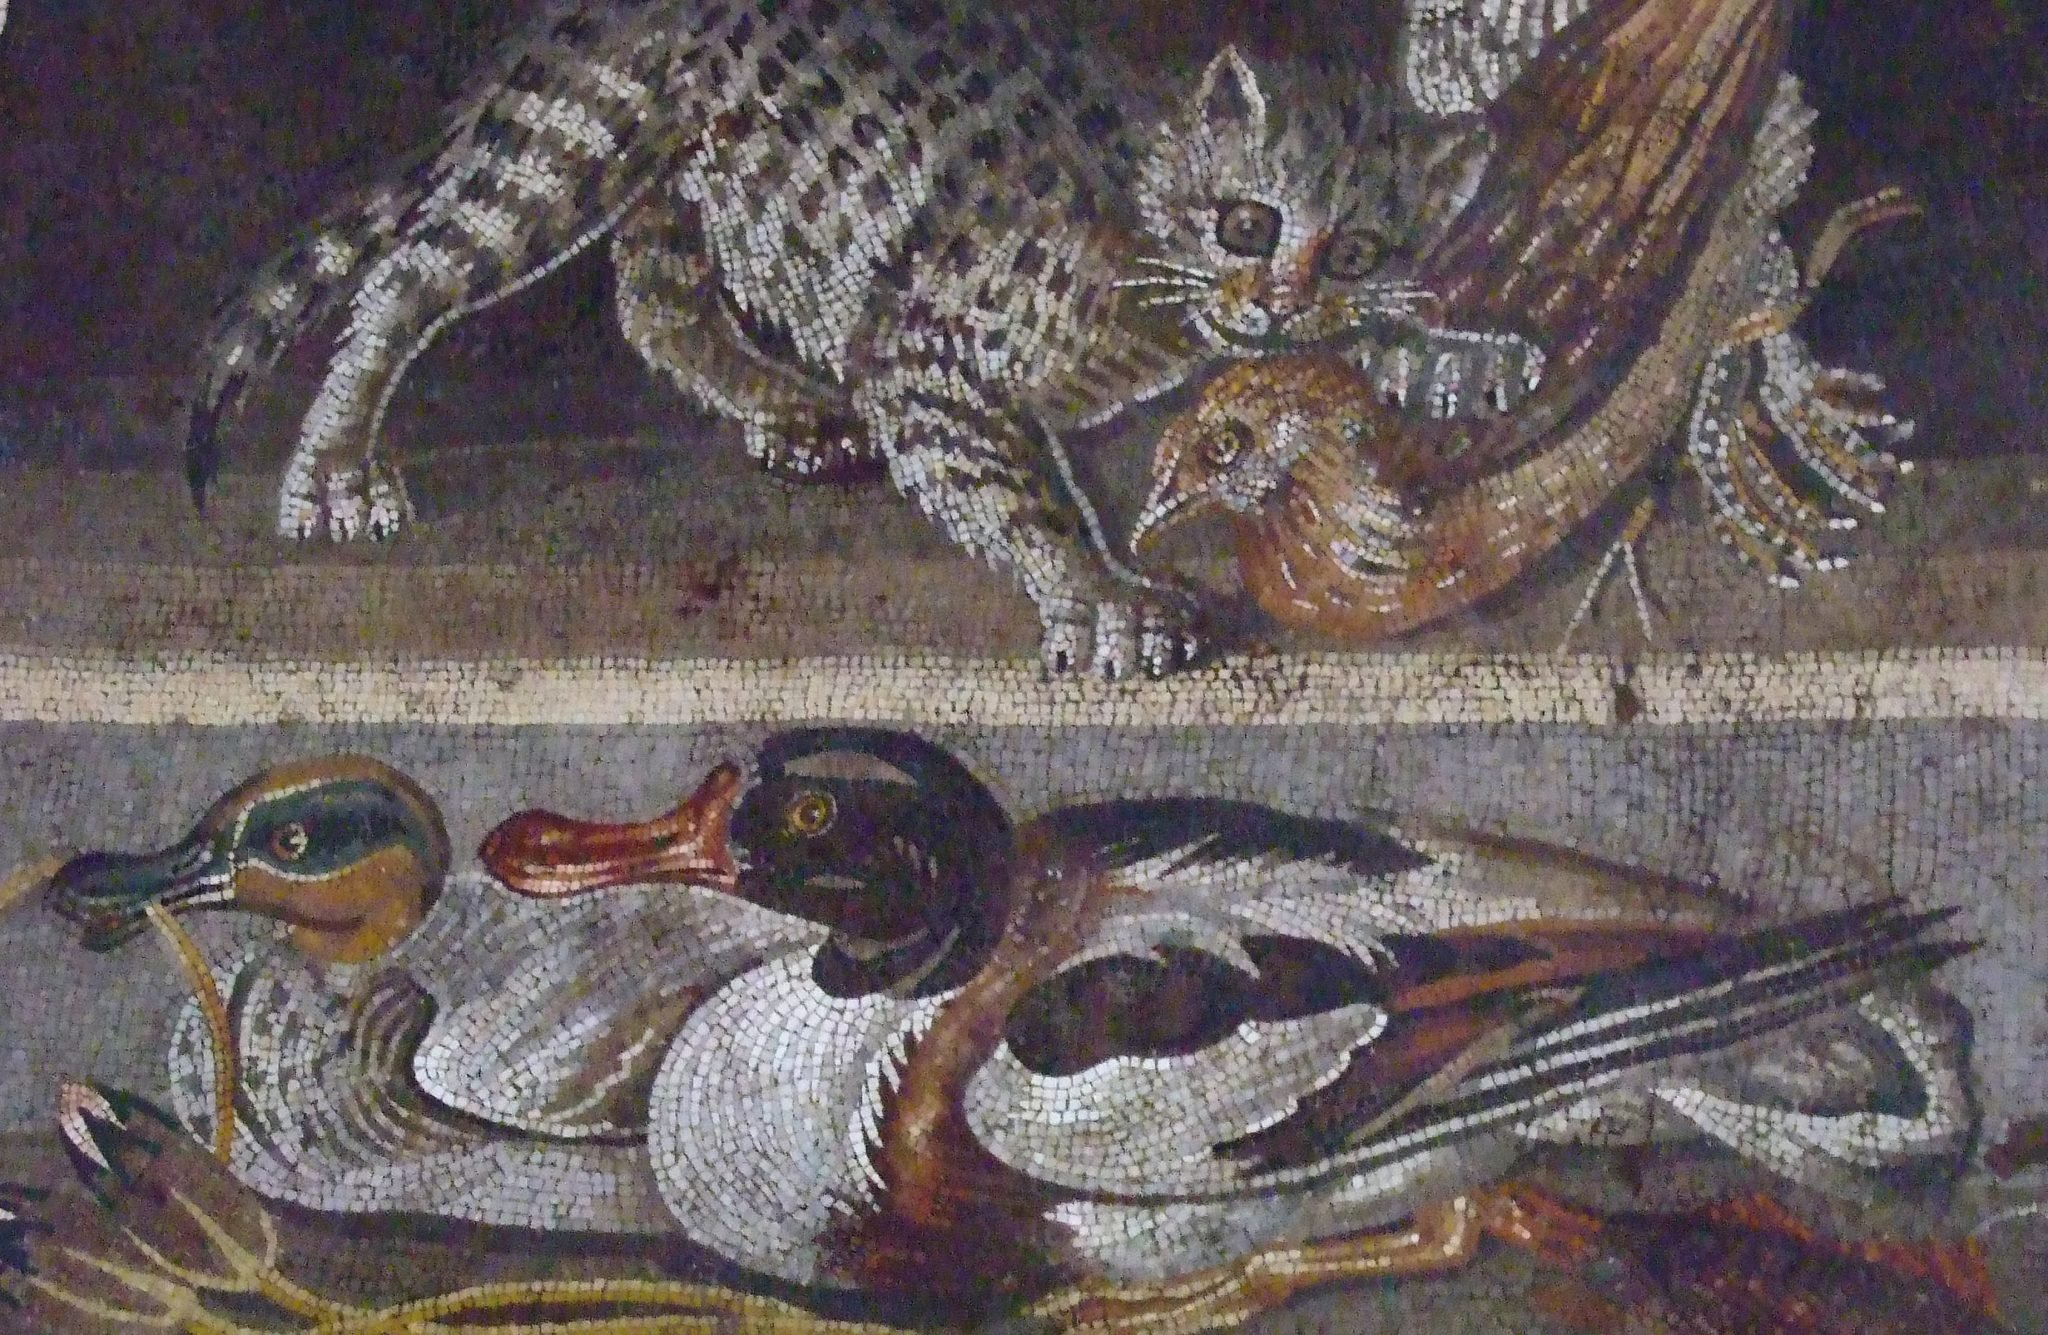 mosaics in pompeii See ancient graeco-roman artefacts from pompeii and herculaneum and the  toro farnese (farnese bull) sculpture, mosaics and more.